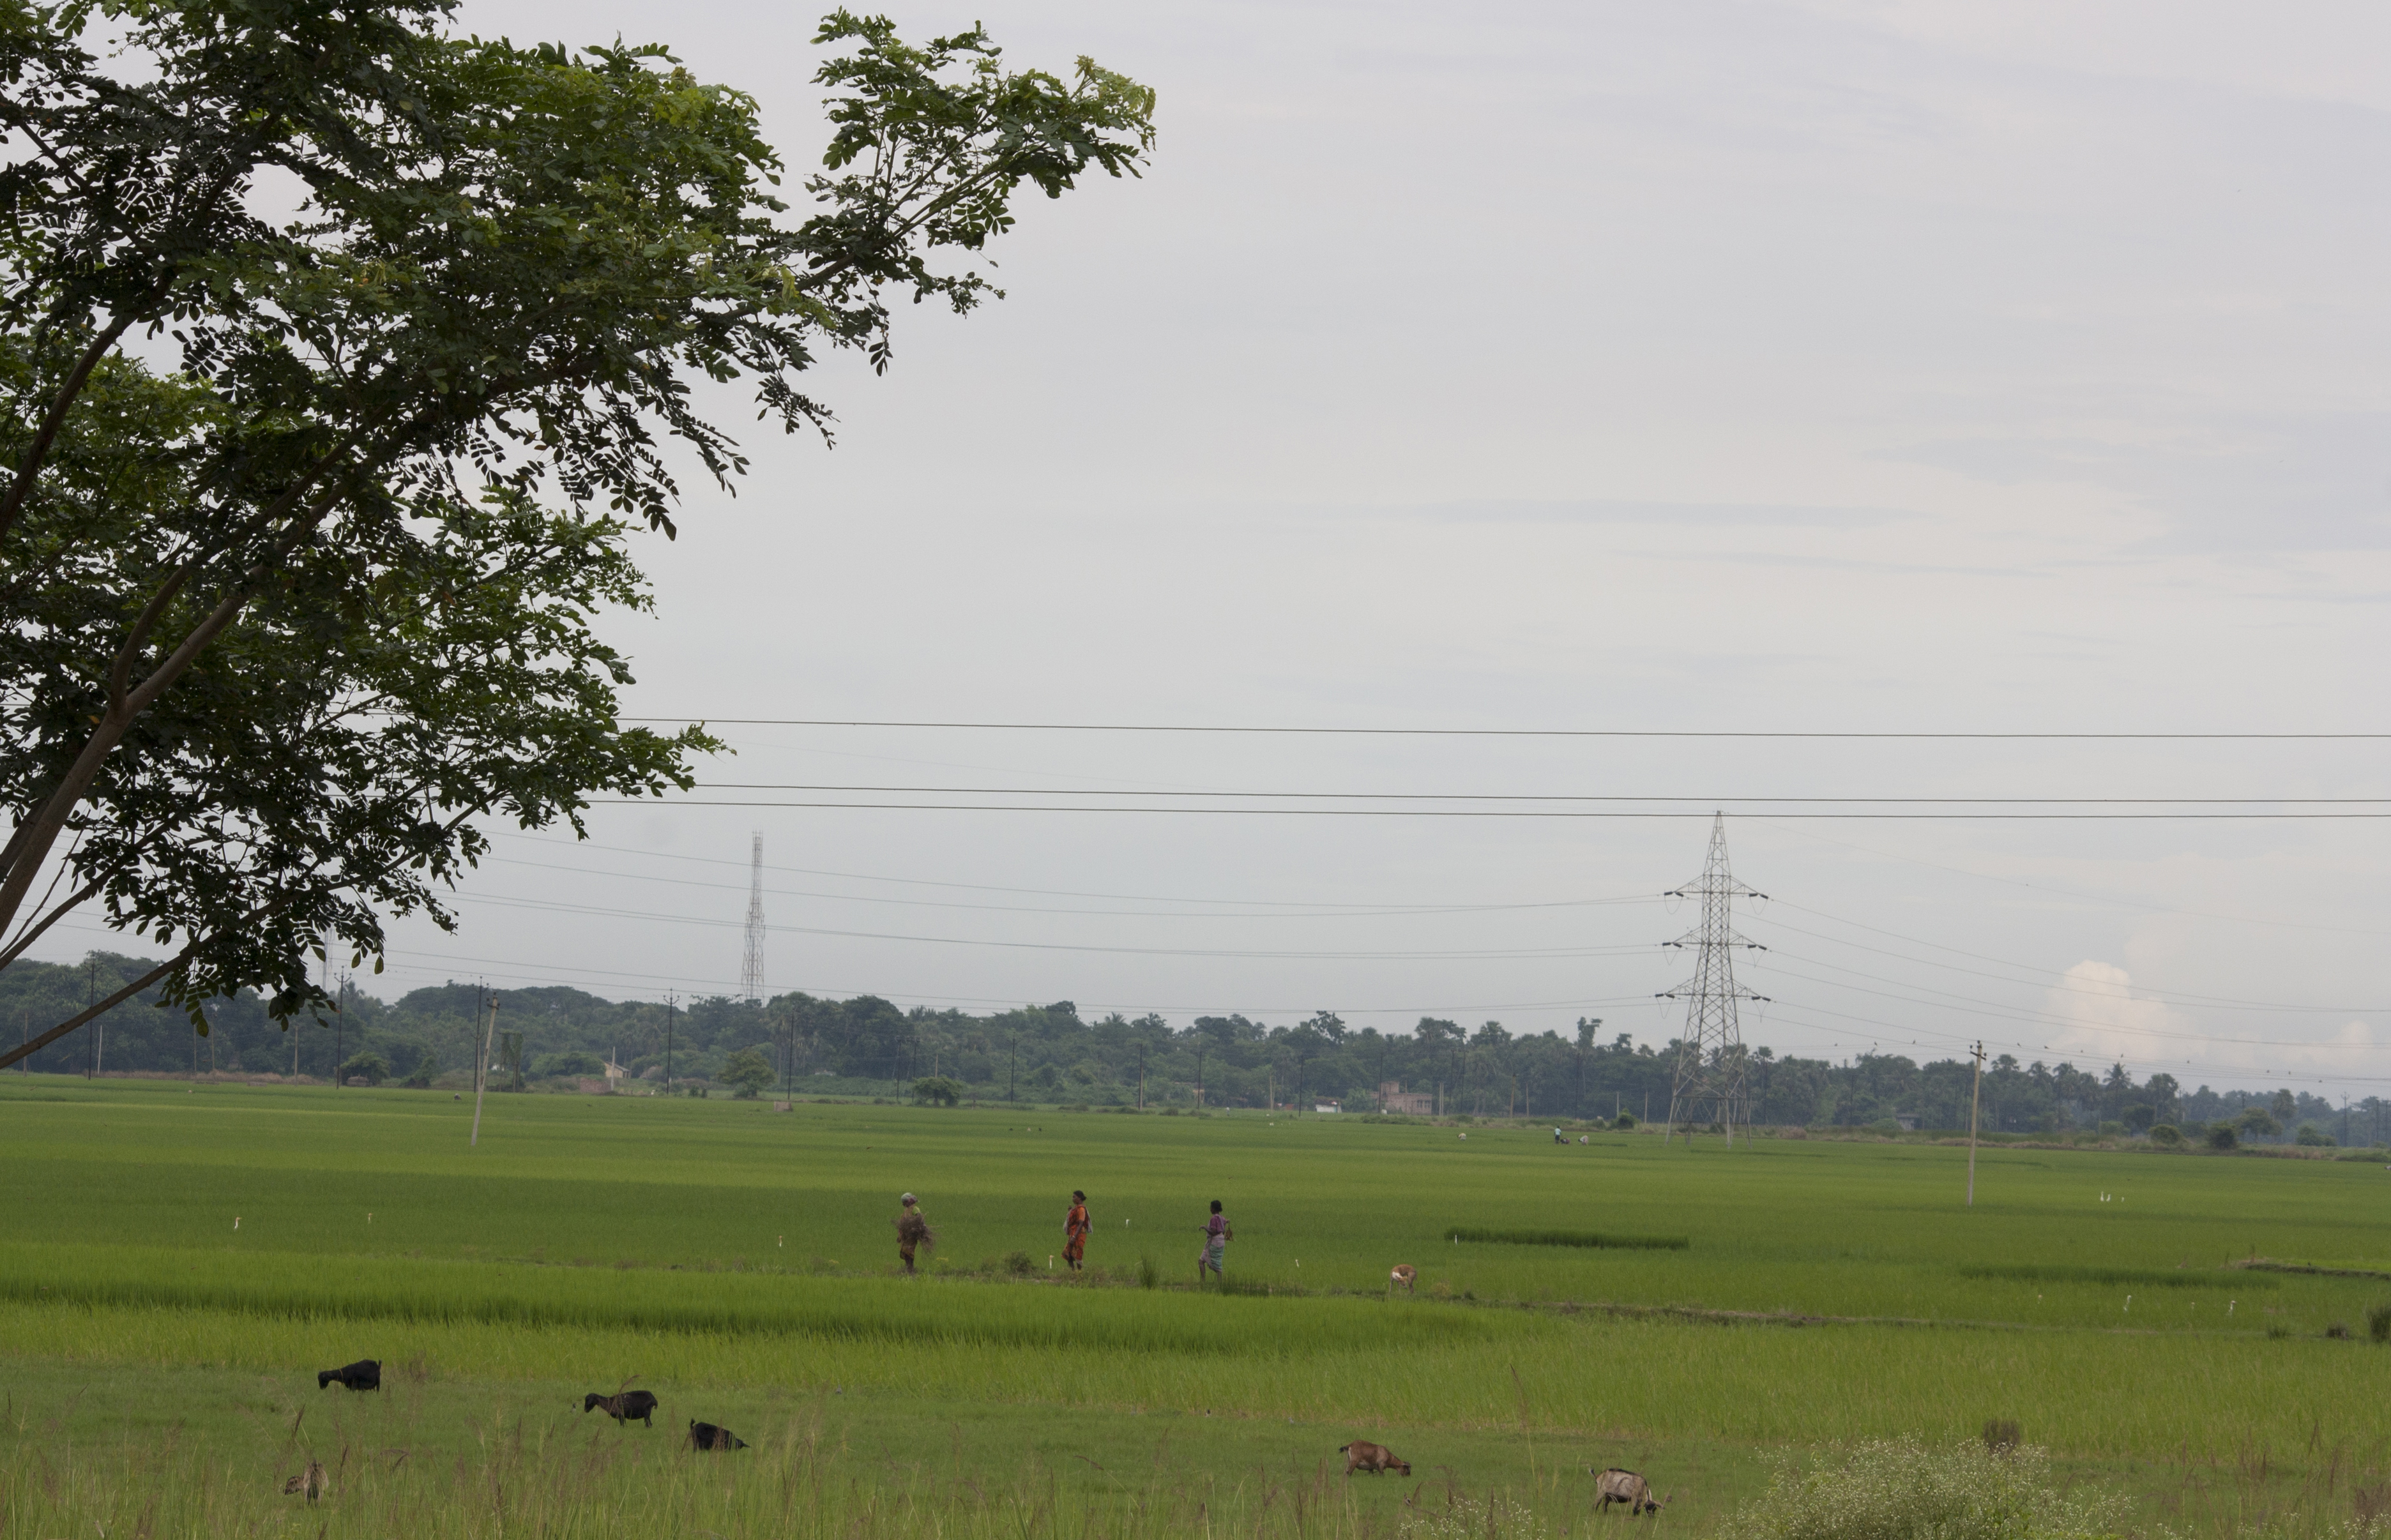 File:Village of West Bengal 11 jpg - Wikimedia Commons